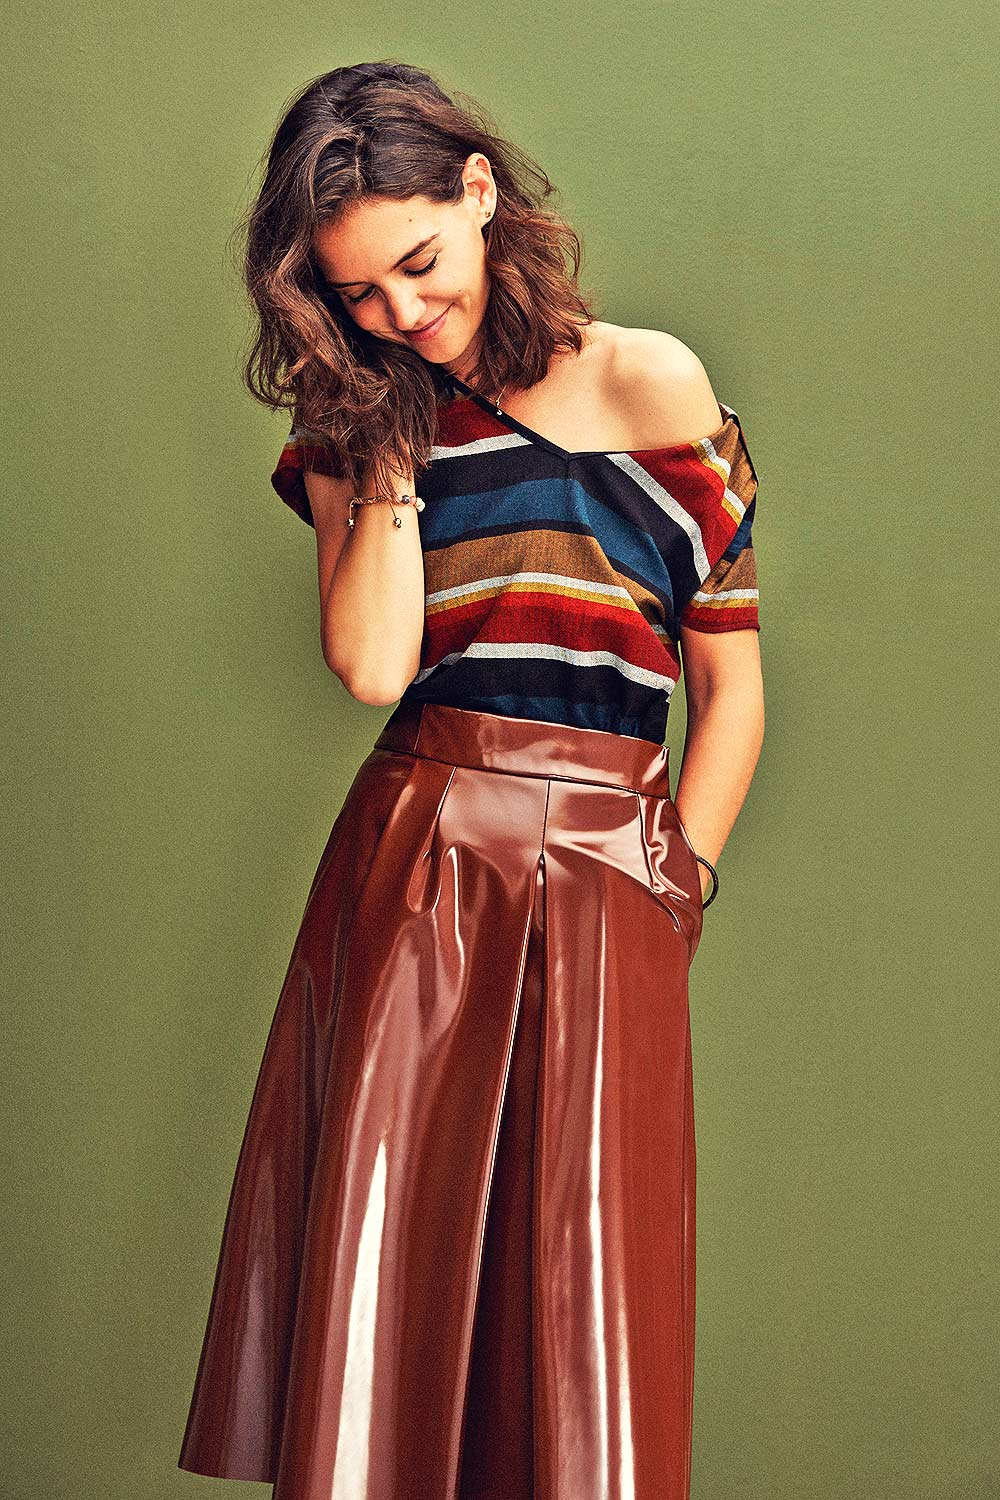 Katie Holmes photoshoot for Refinery29 by Olivia Malone